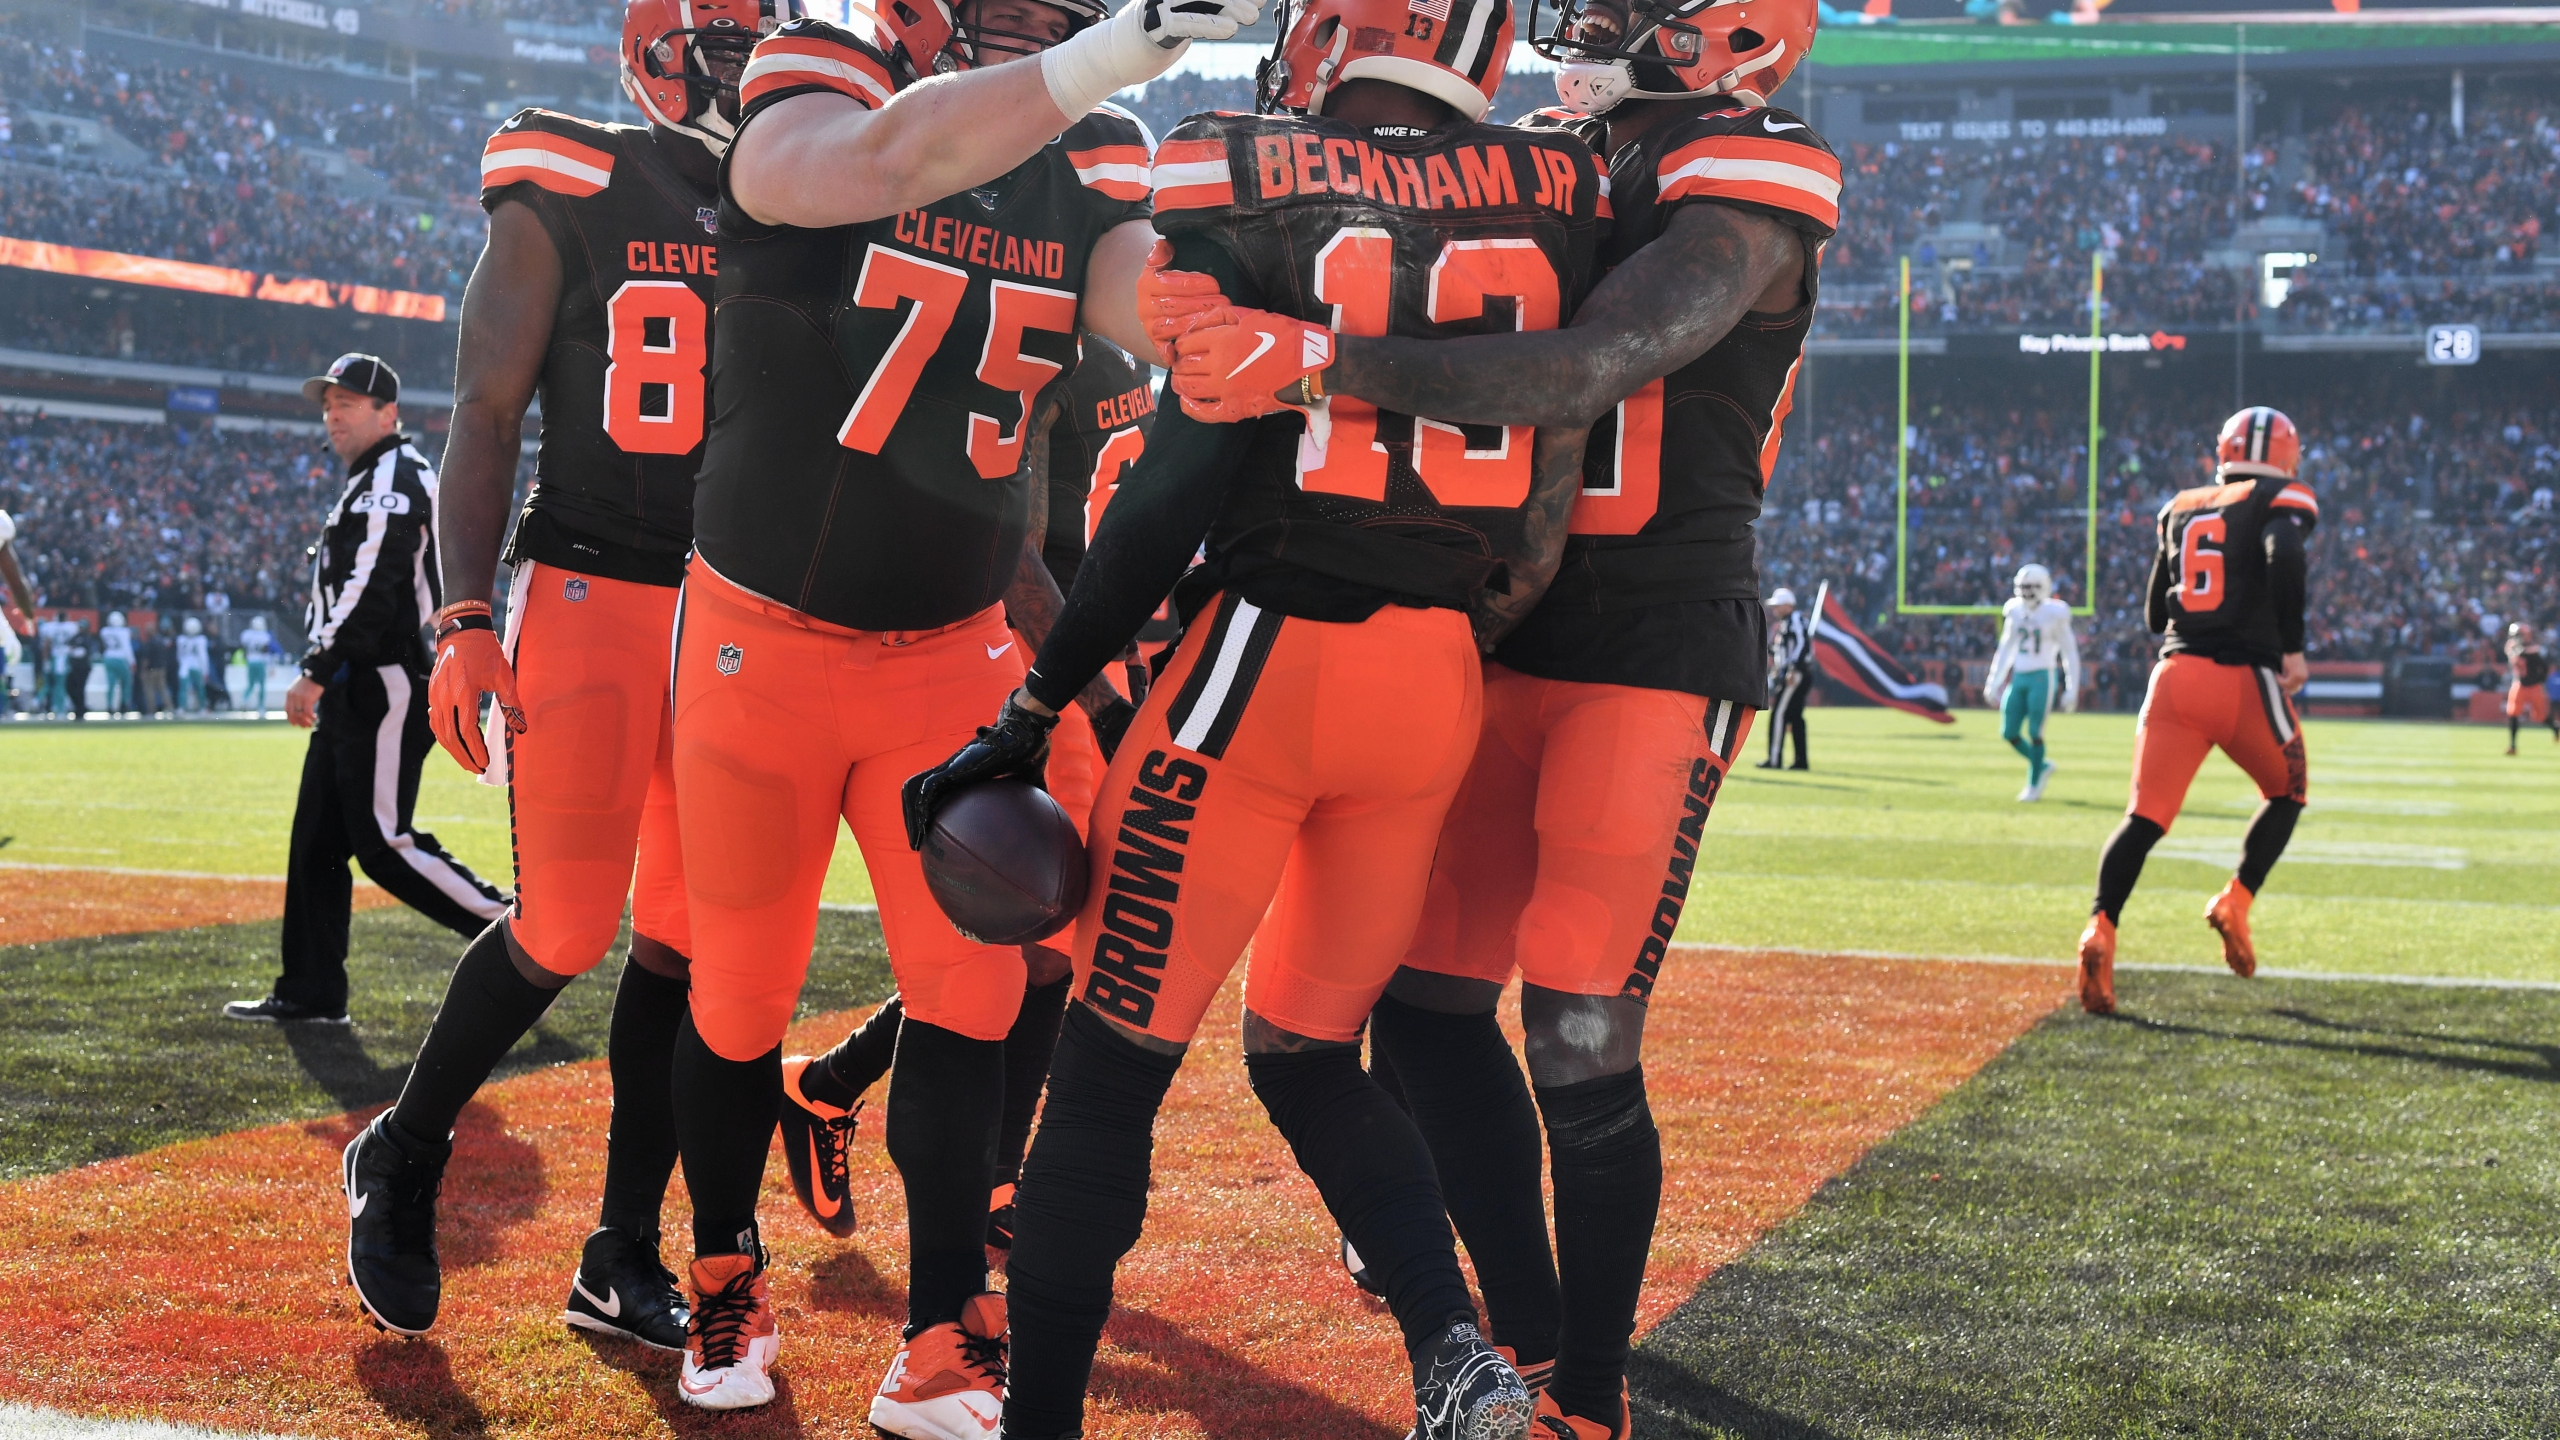 Odell Beckham Jr. #13 of the Cleveland Browns celebrates